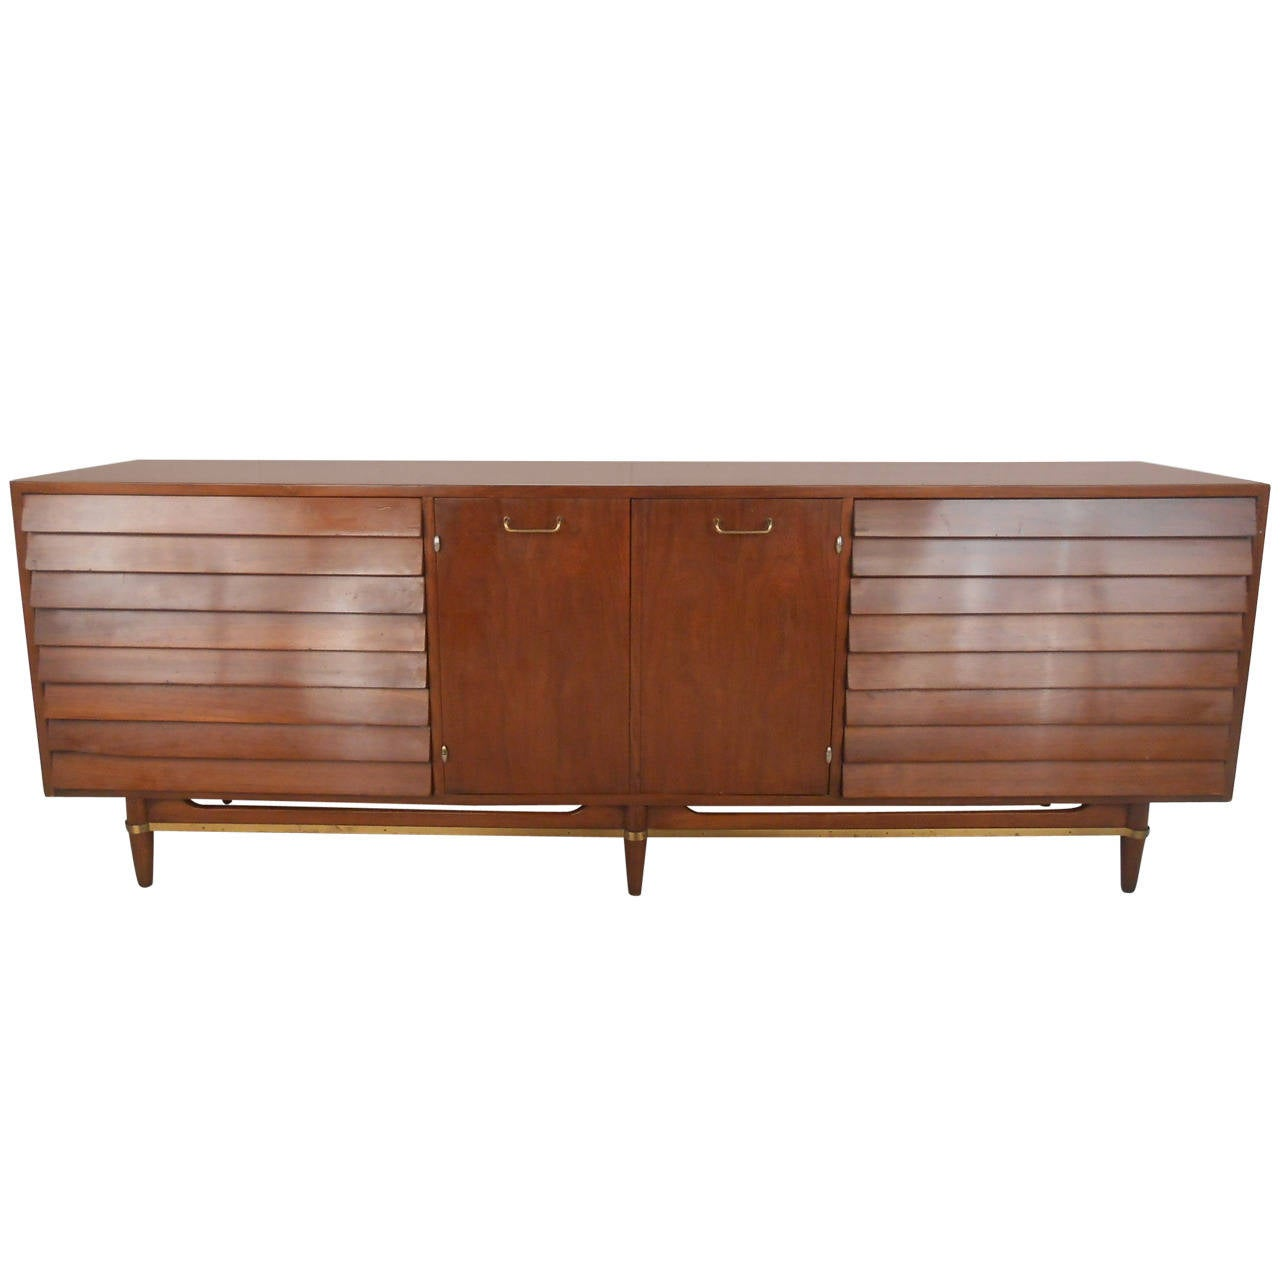 Mid century modern american of martinsville credena at 1stdibs for Mid century american furniture